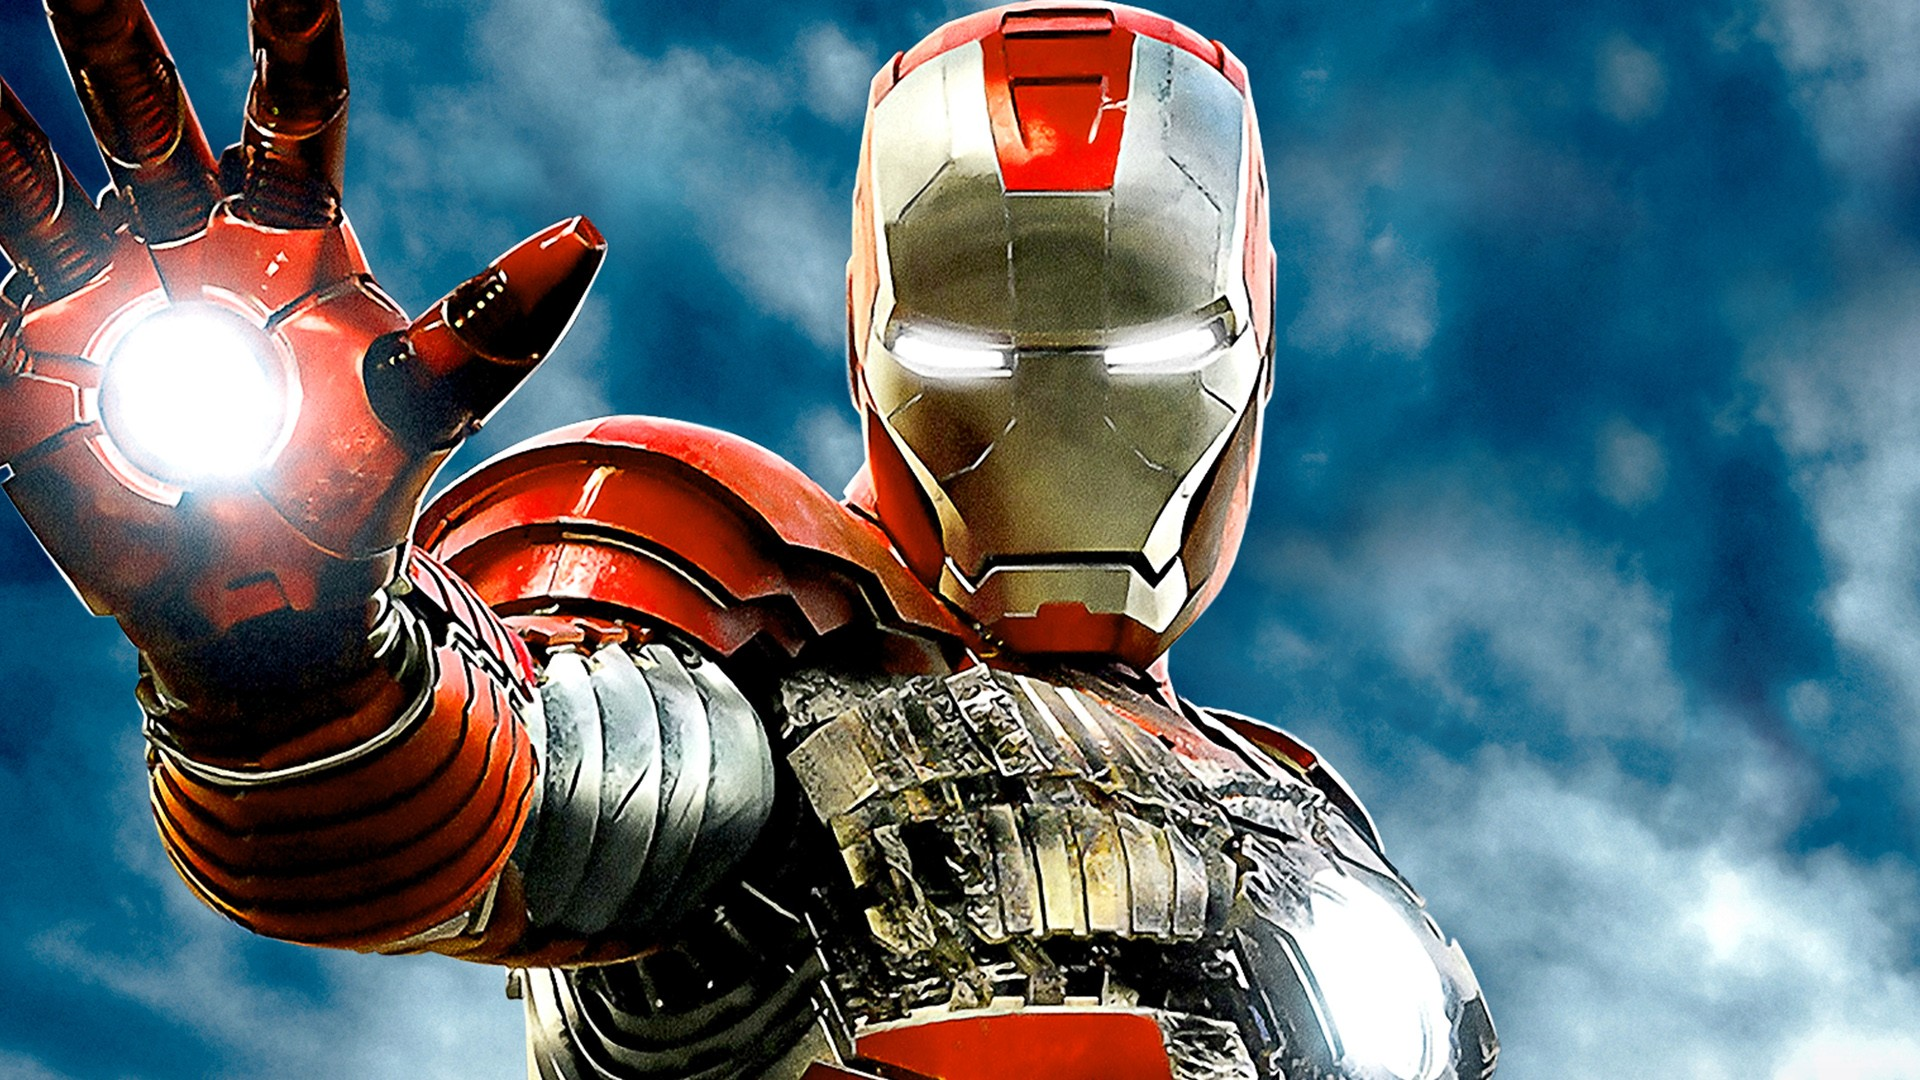 Four Cars Wallpapers Iron Man 2 Imax Poster Wallpapers Hd Wallpapers Id 8549